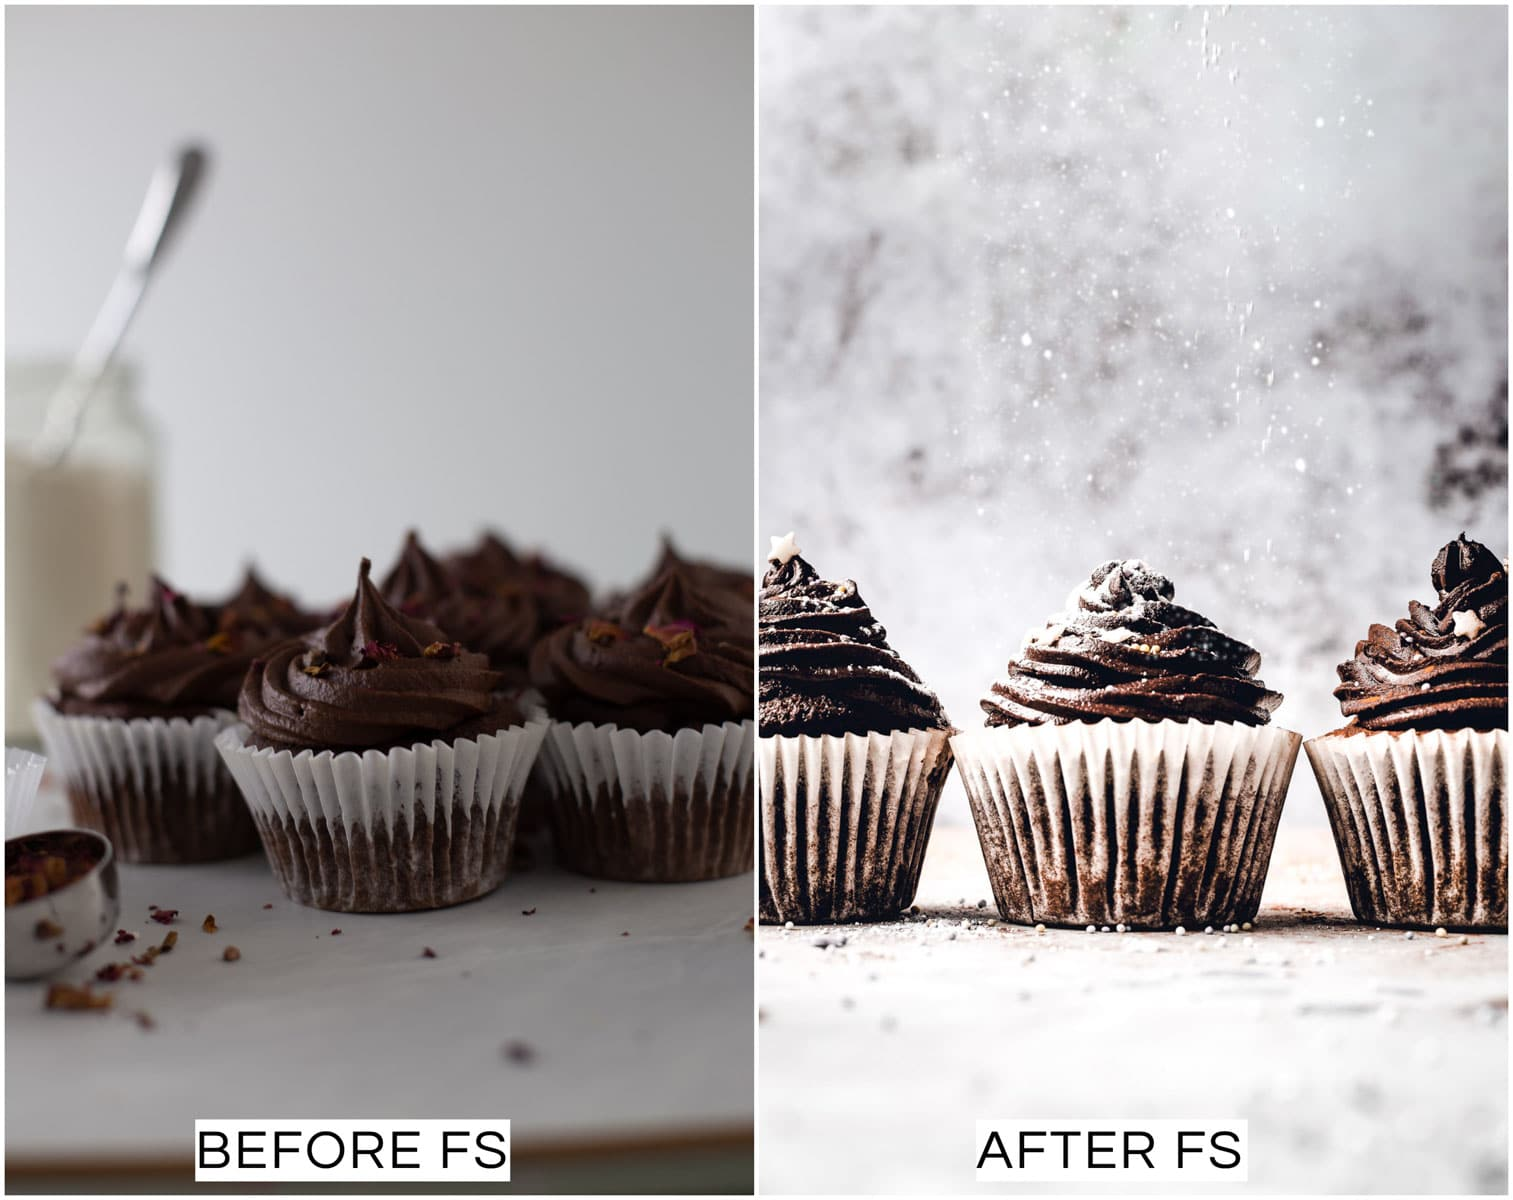 A collage of two images showing a before and after picture of chocolate cupcakes.